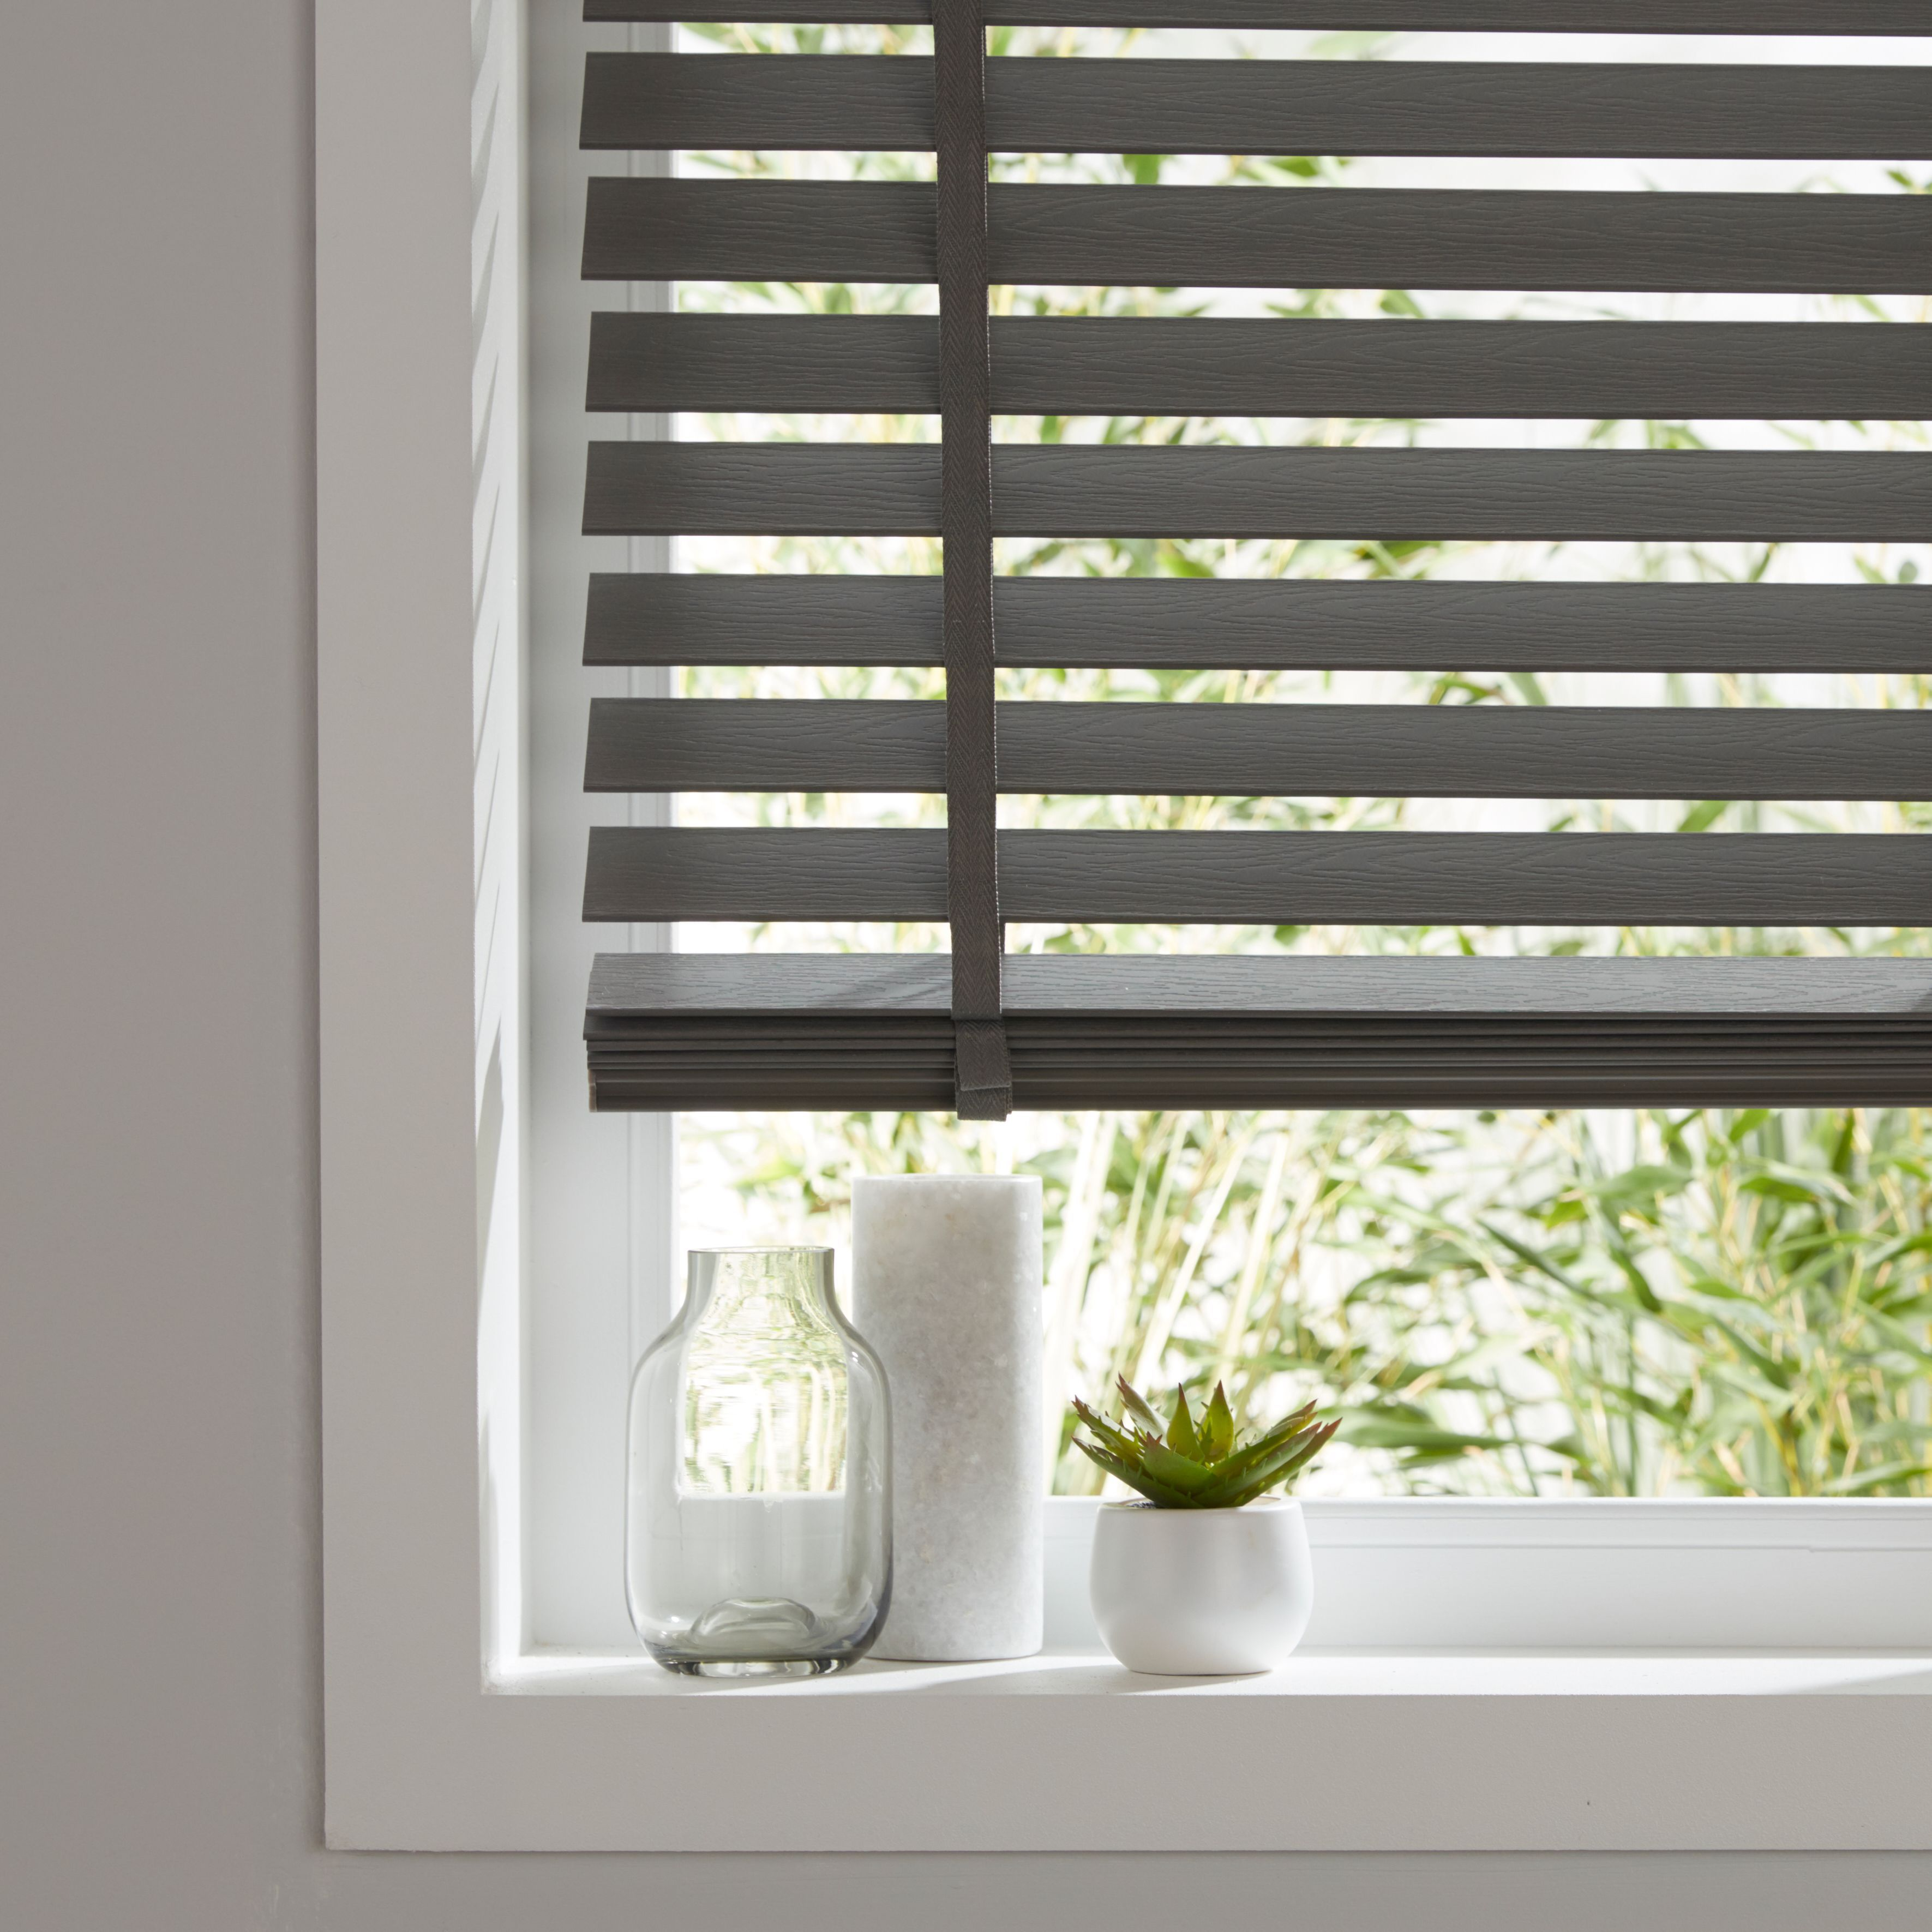 ask telling house is your a what satisfaction savvycleaner blinds question you savvy client not cleaner back turns